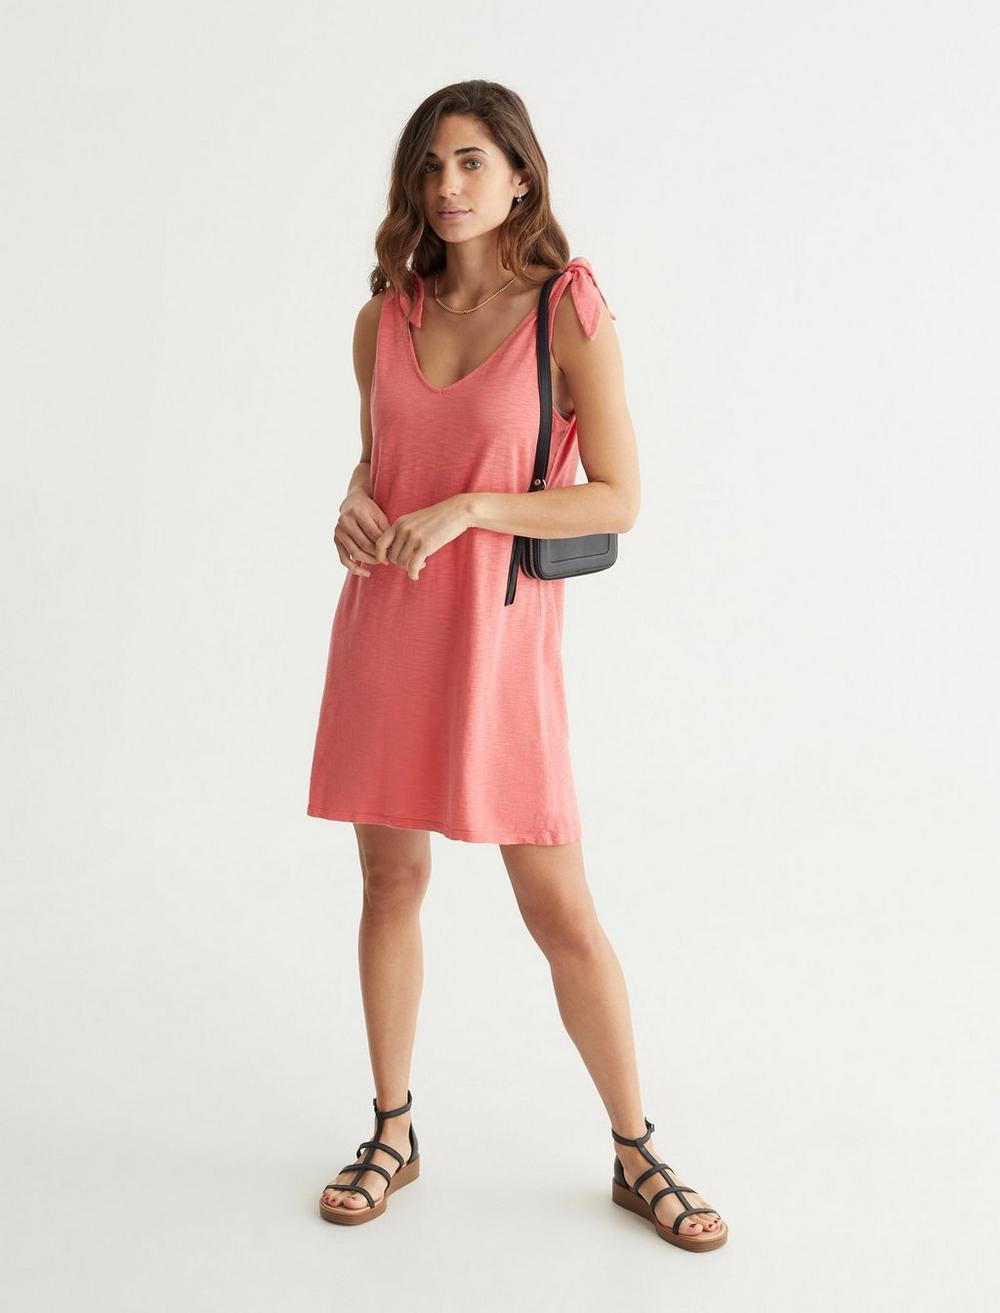 KNOTTED TANK DRESS, image 6